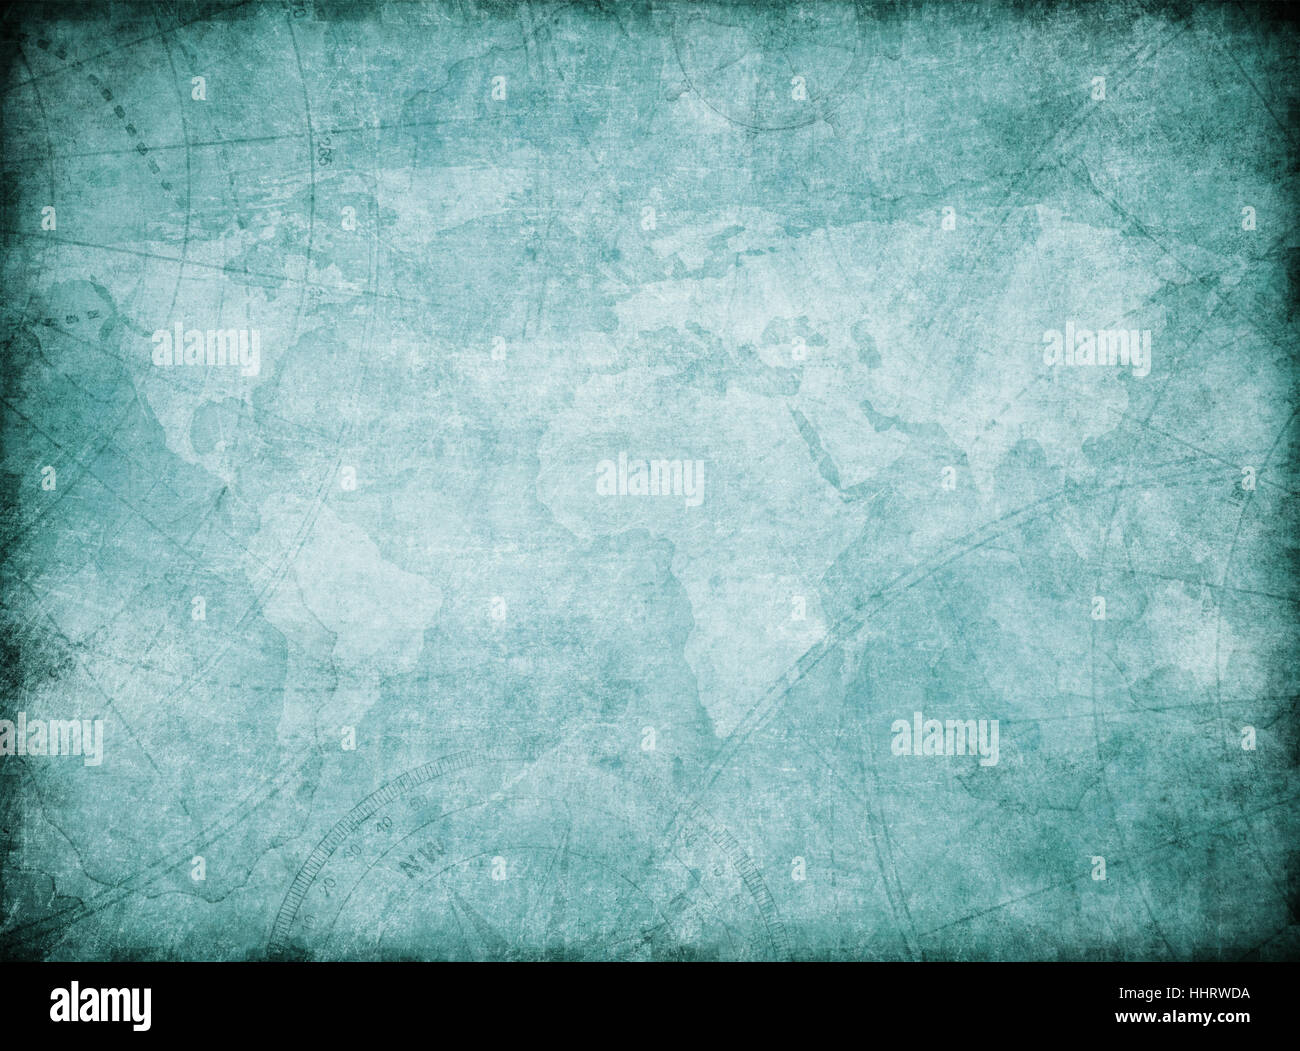 Vintage world map background stylization stock photo 131446598 alamy vintage world map background stylization gumiabroncs Gallery